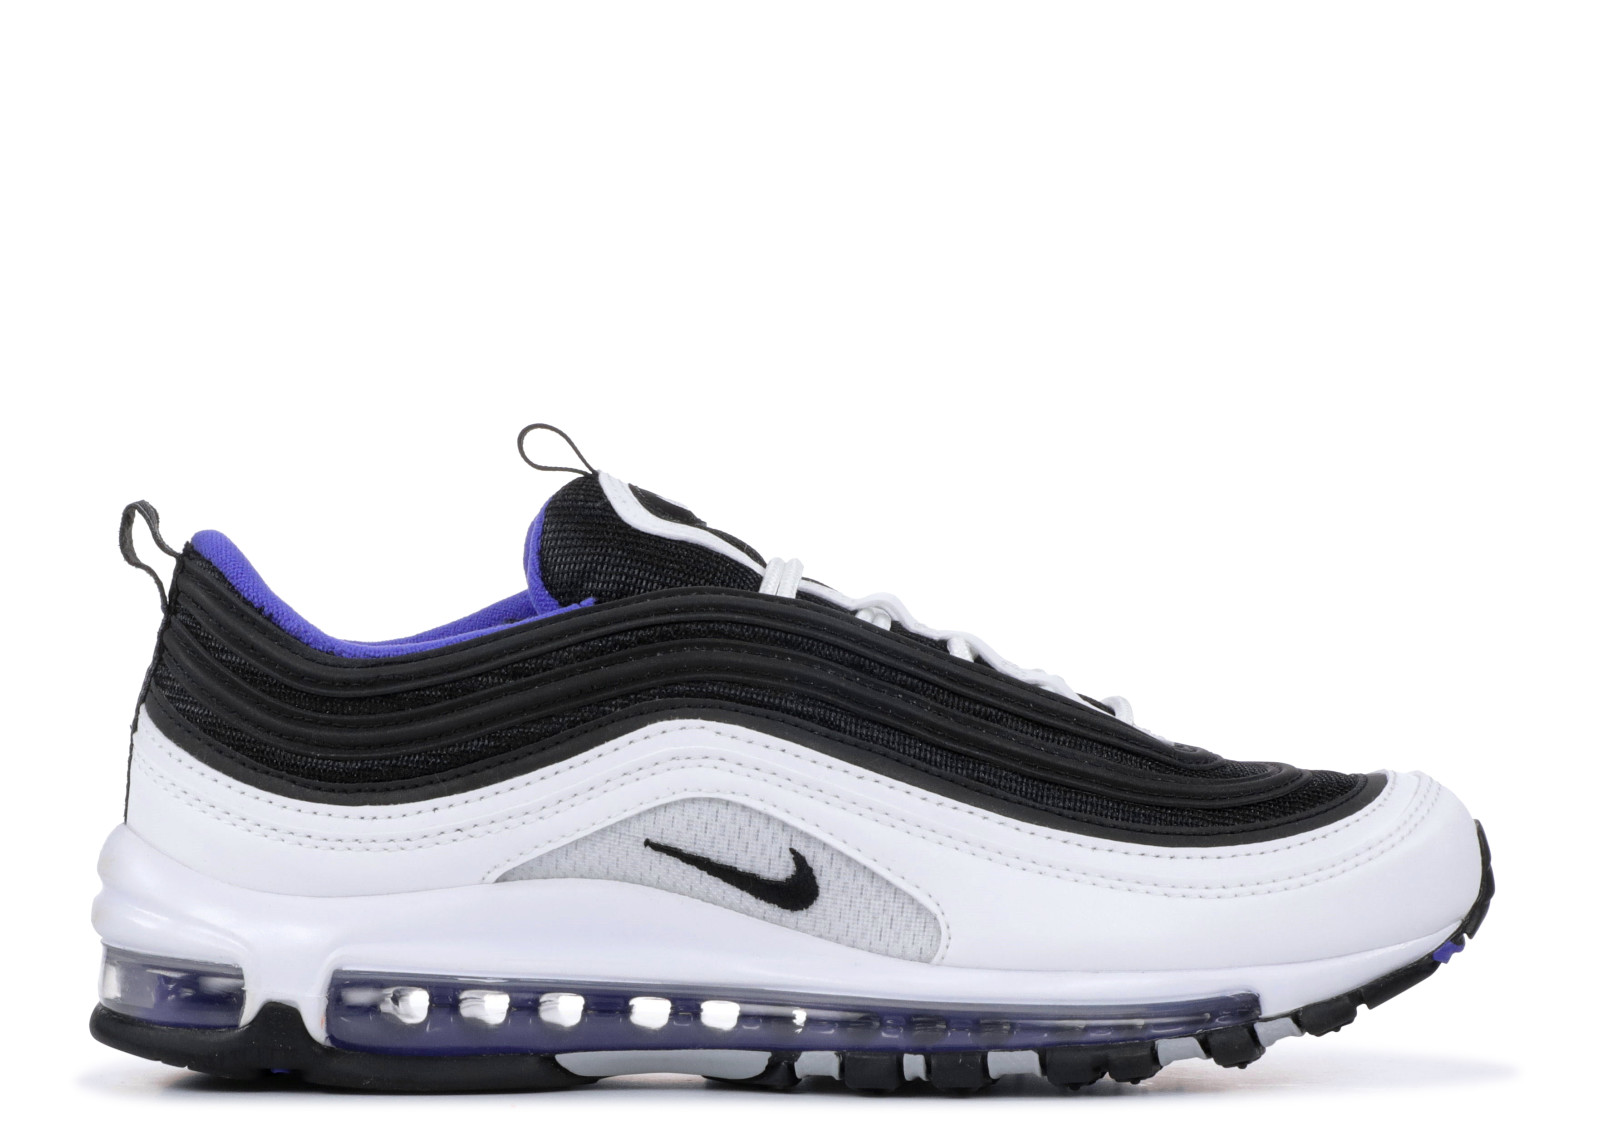 Nike Air Max 97 WhiteBlack Persian Violet | 921826 103